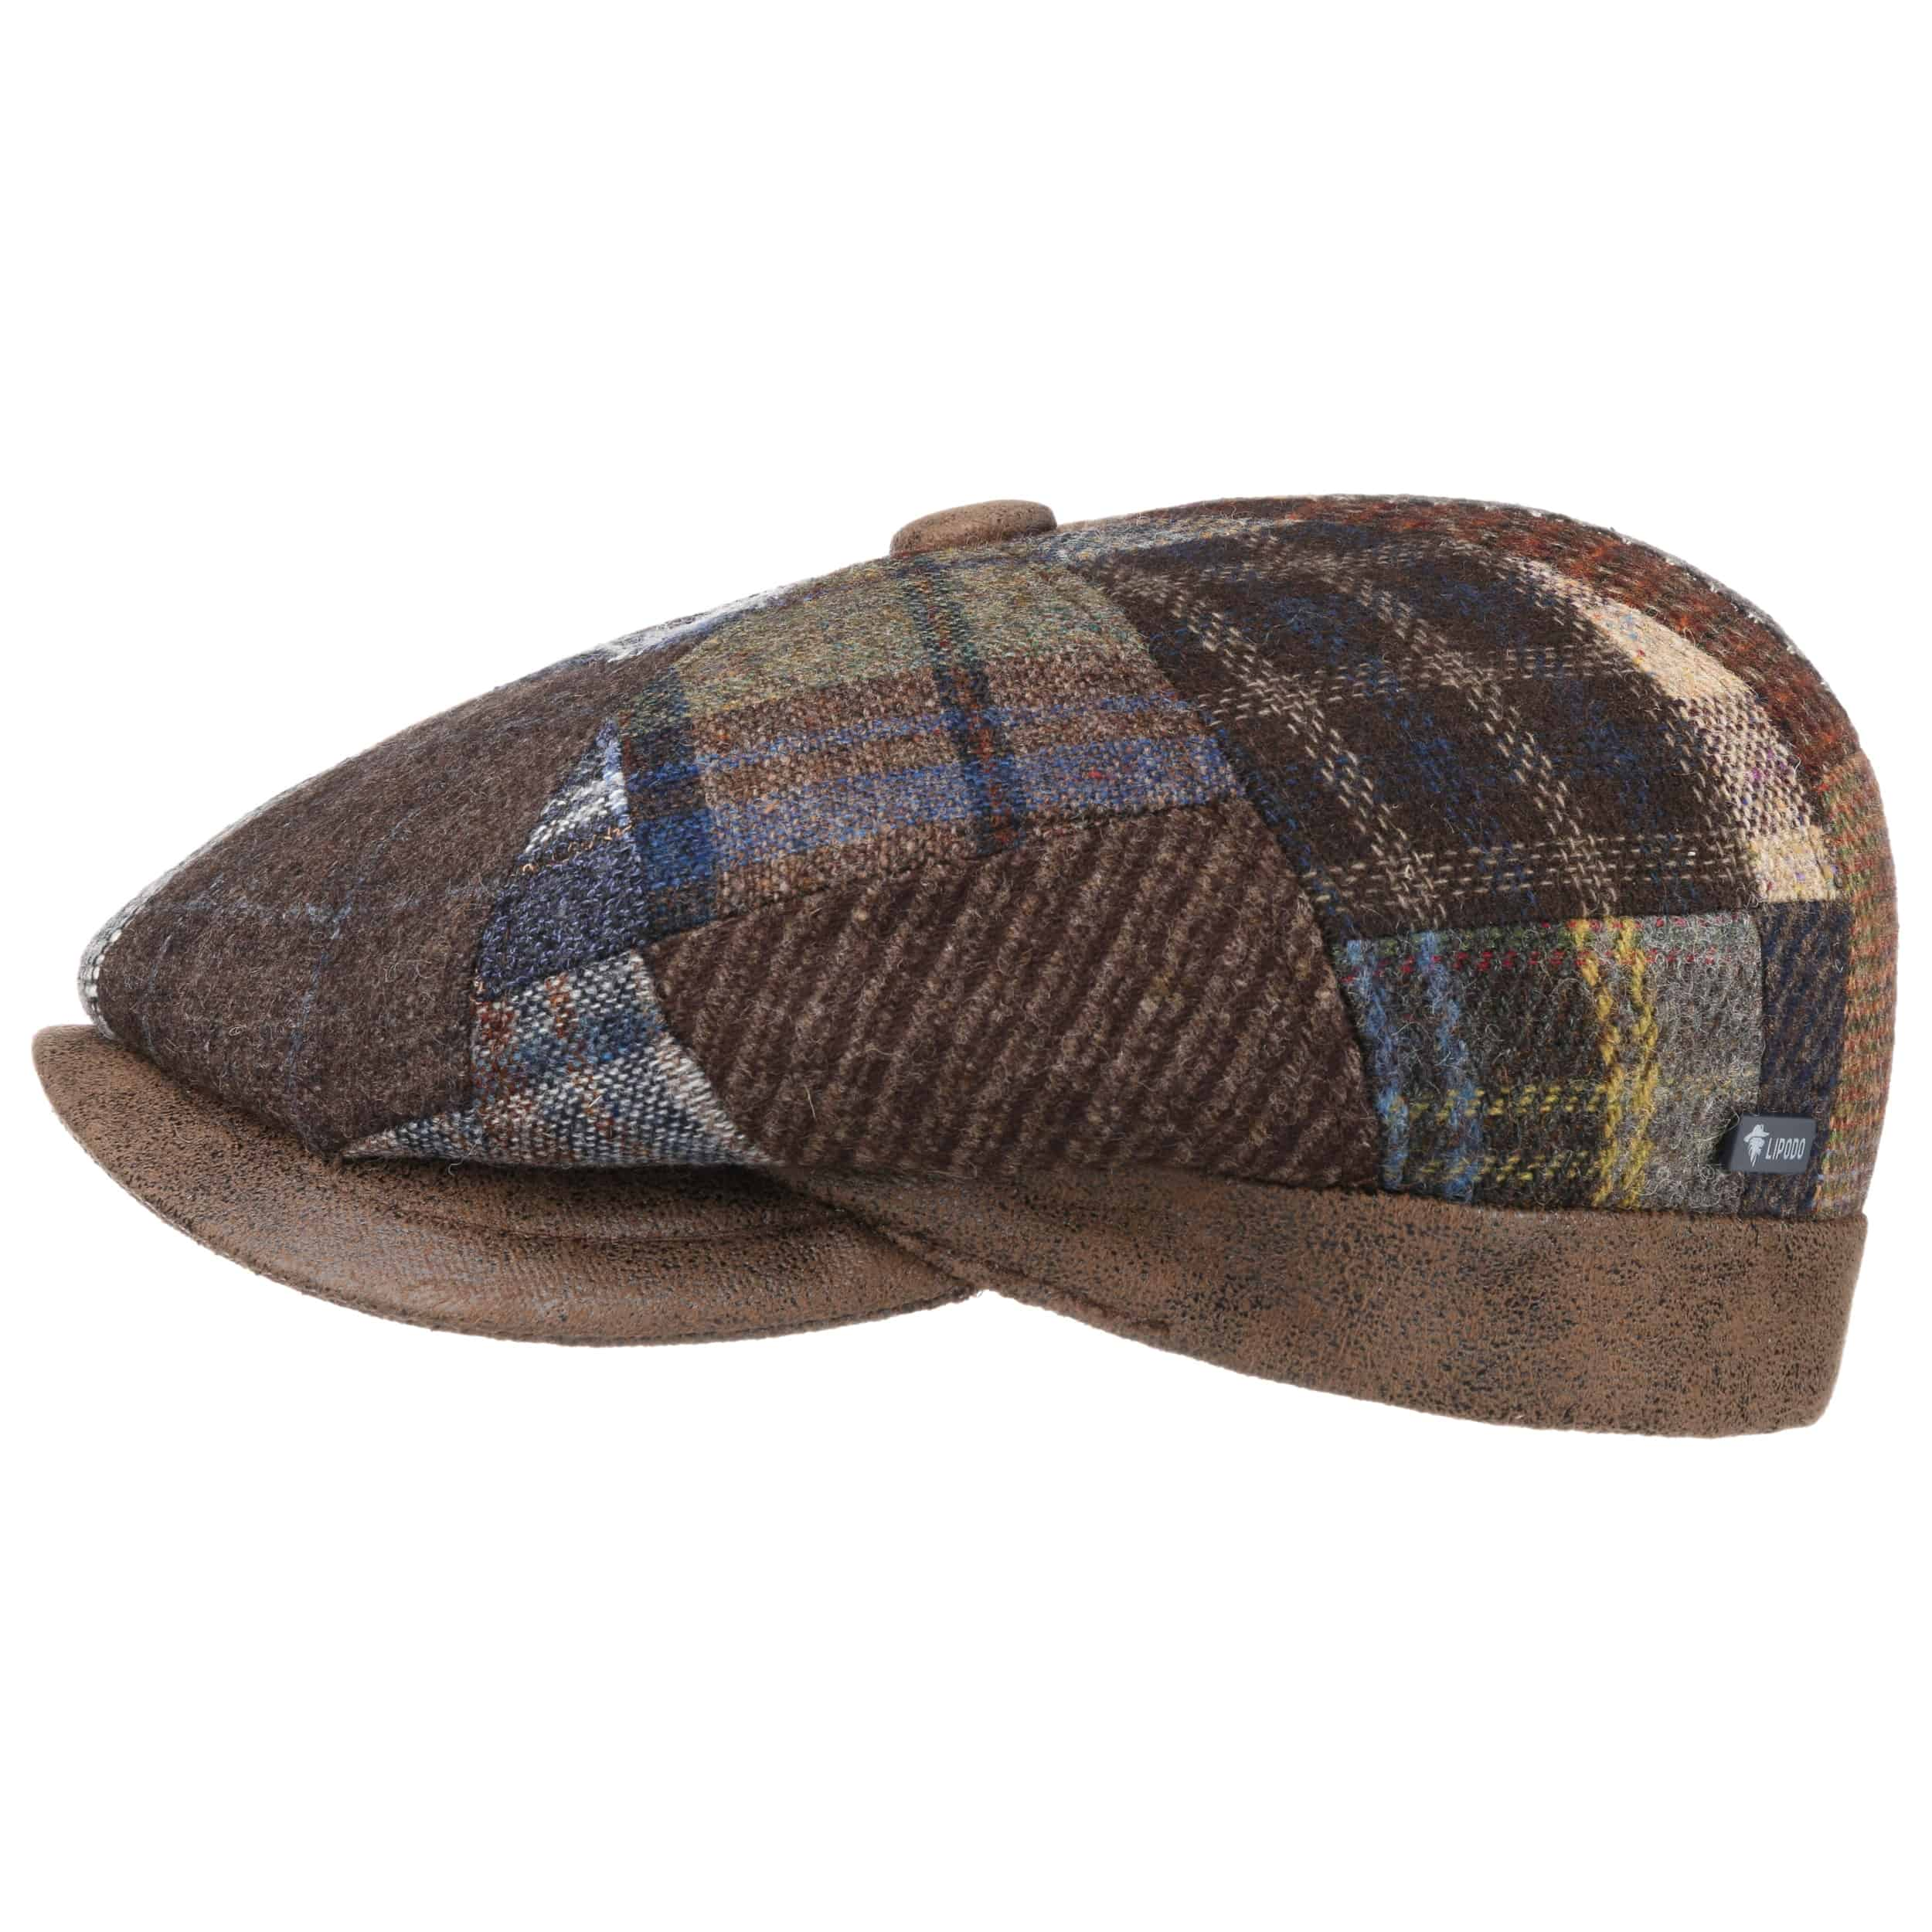 ... City Bic Patchwork Flat Cap by Lipodo - mixed colours 5 ce81a92334b